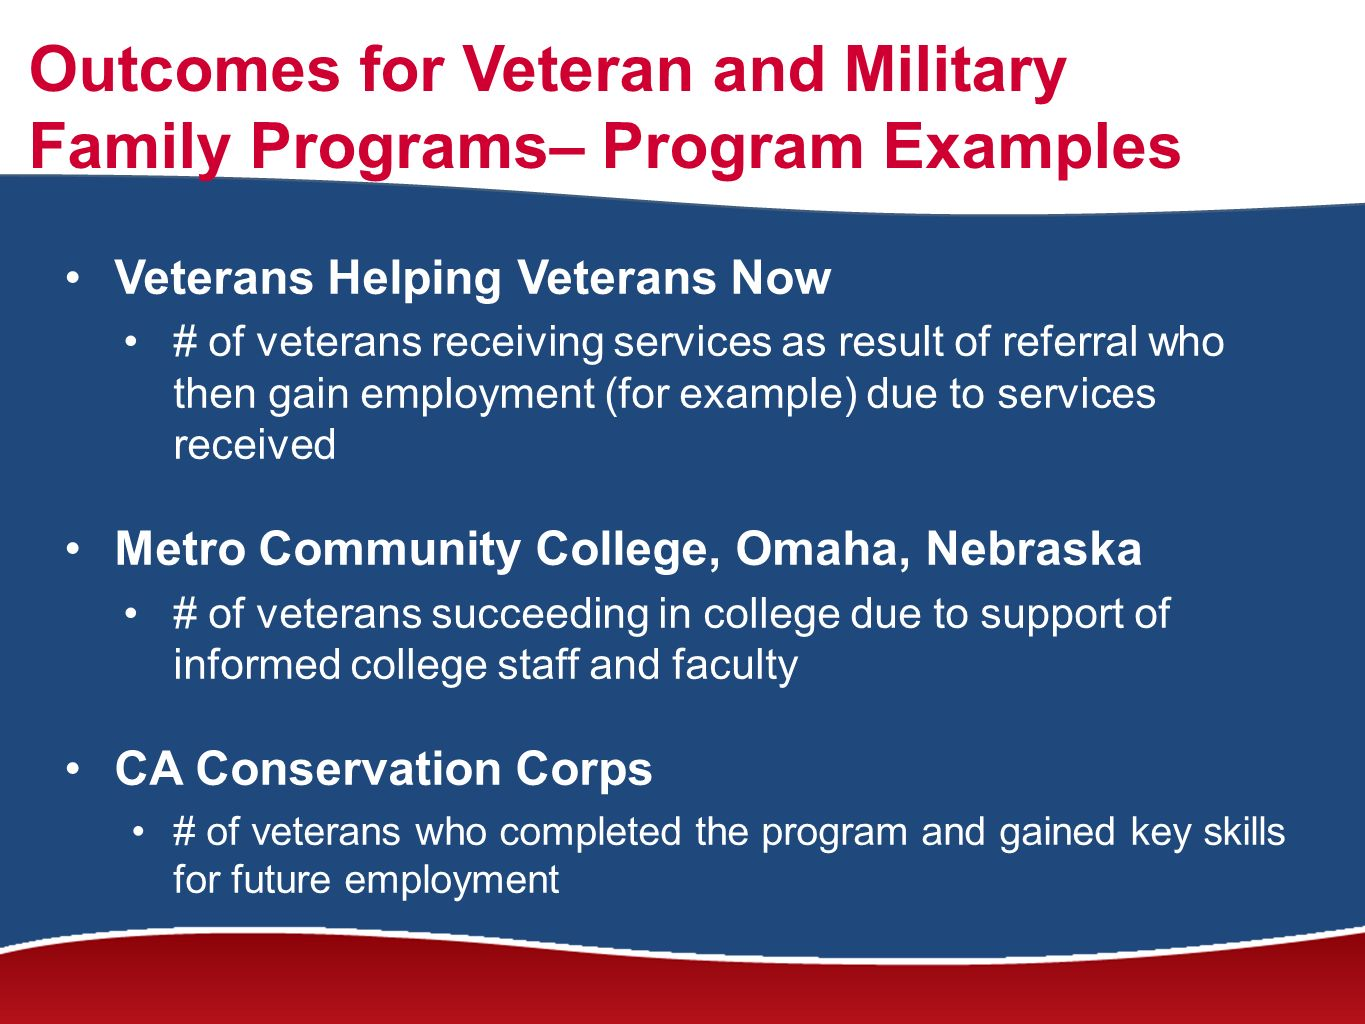 Outcomes for Veteran and Military Family Programs– Program Examples Veterans Helping Veterans Now # of veterans receiving services as result of referral who then gain employment (for example) due to services received Metro Community College, Omaha, Nebraska # of veterans succeeding in college due to support of informed college staff and faculty CA Conservation Corps # of veterans who completed the program and gained key skills for future employment